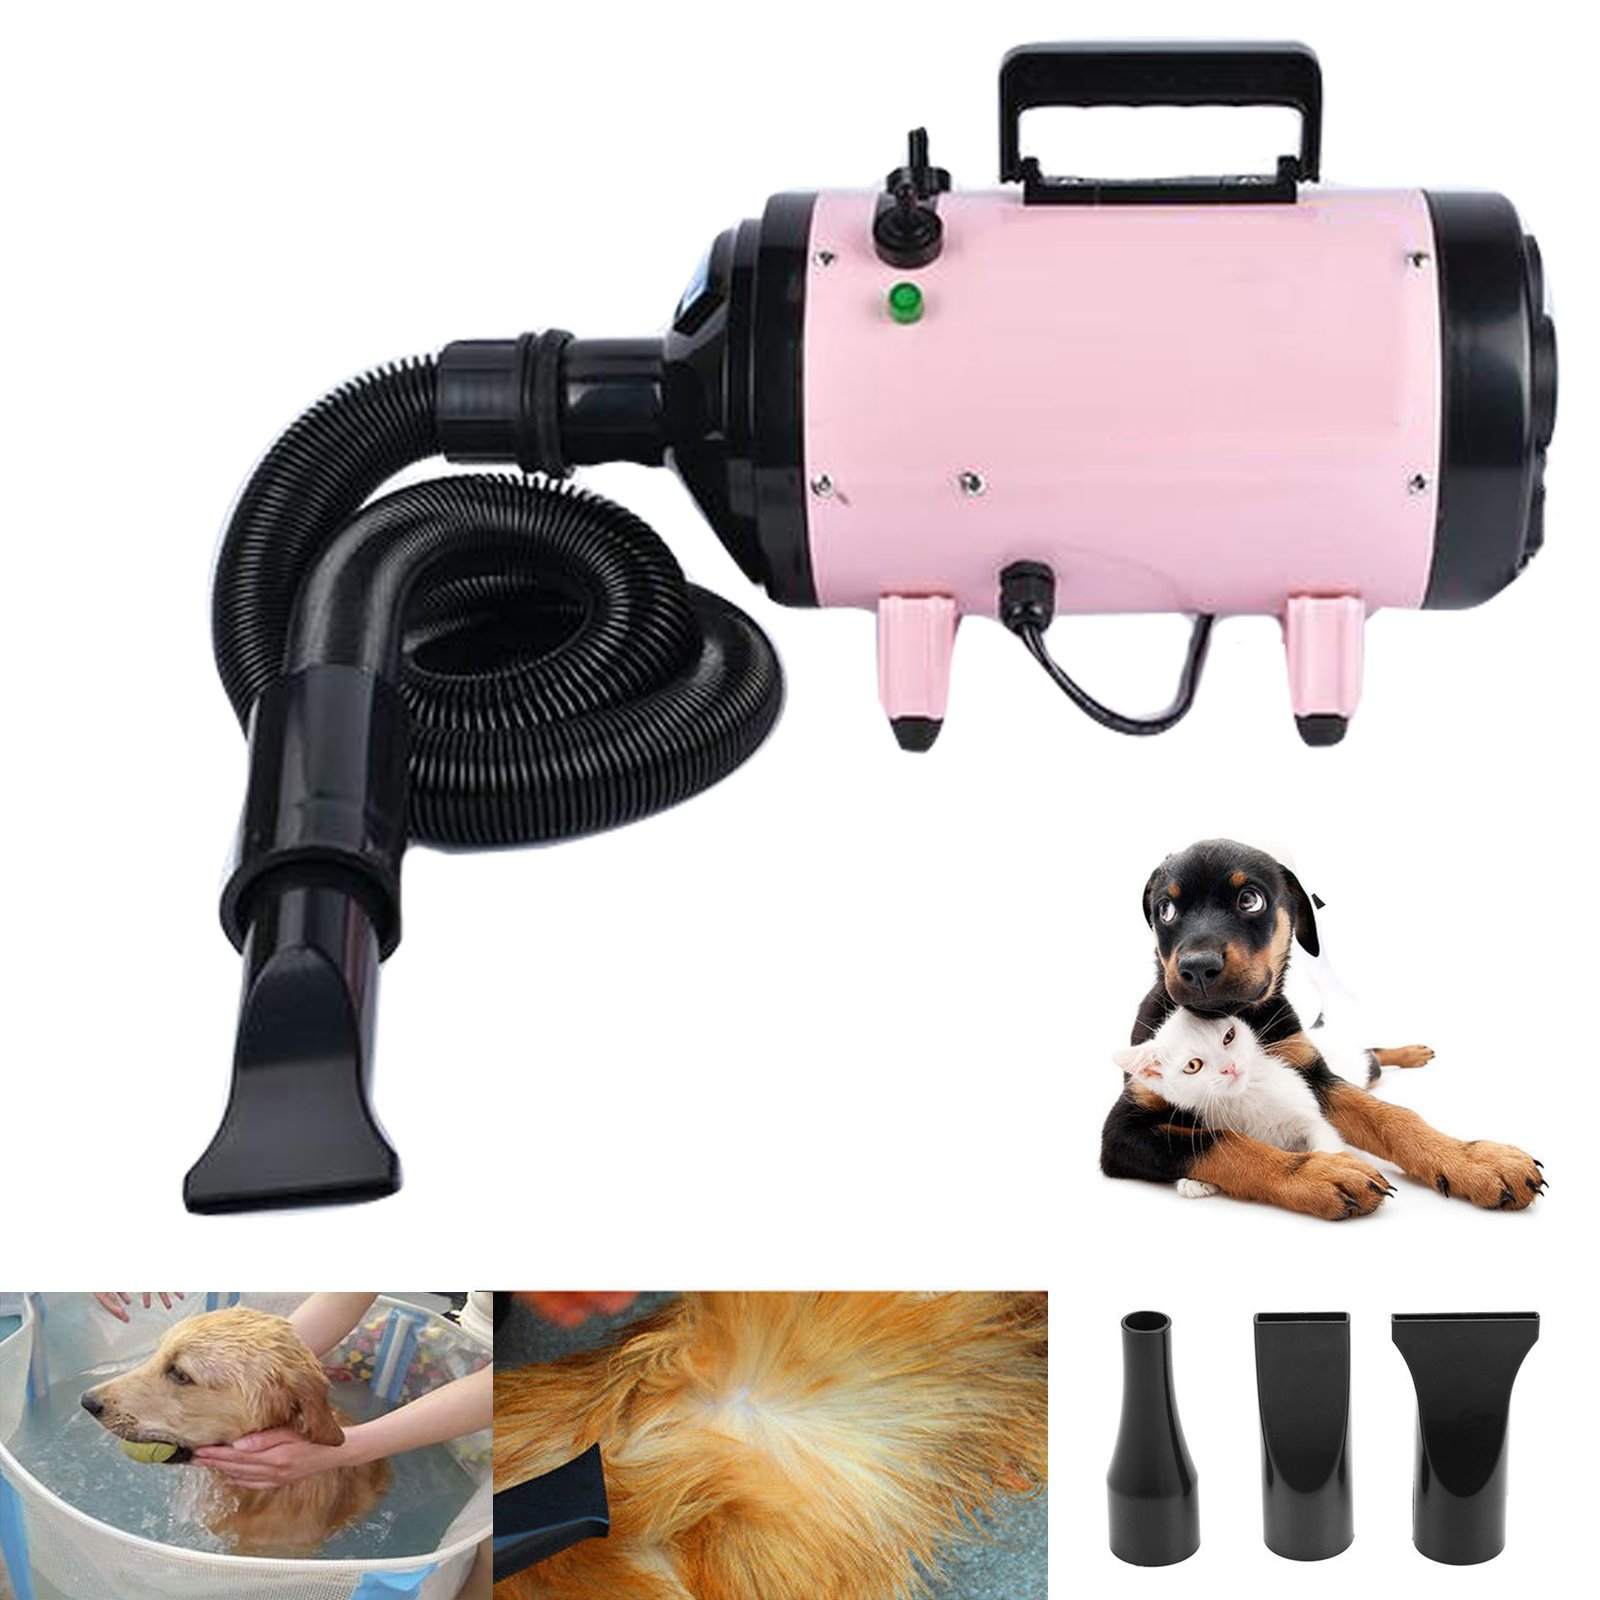 dicn 2400W Pet Hairdryer Variable Speed High Velocity Hair Dryer Grooming Fur Blower Blaster Heater 3 Nozzles + Flexible Hose Professional for Dogs Cats Pink